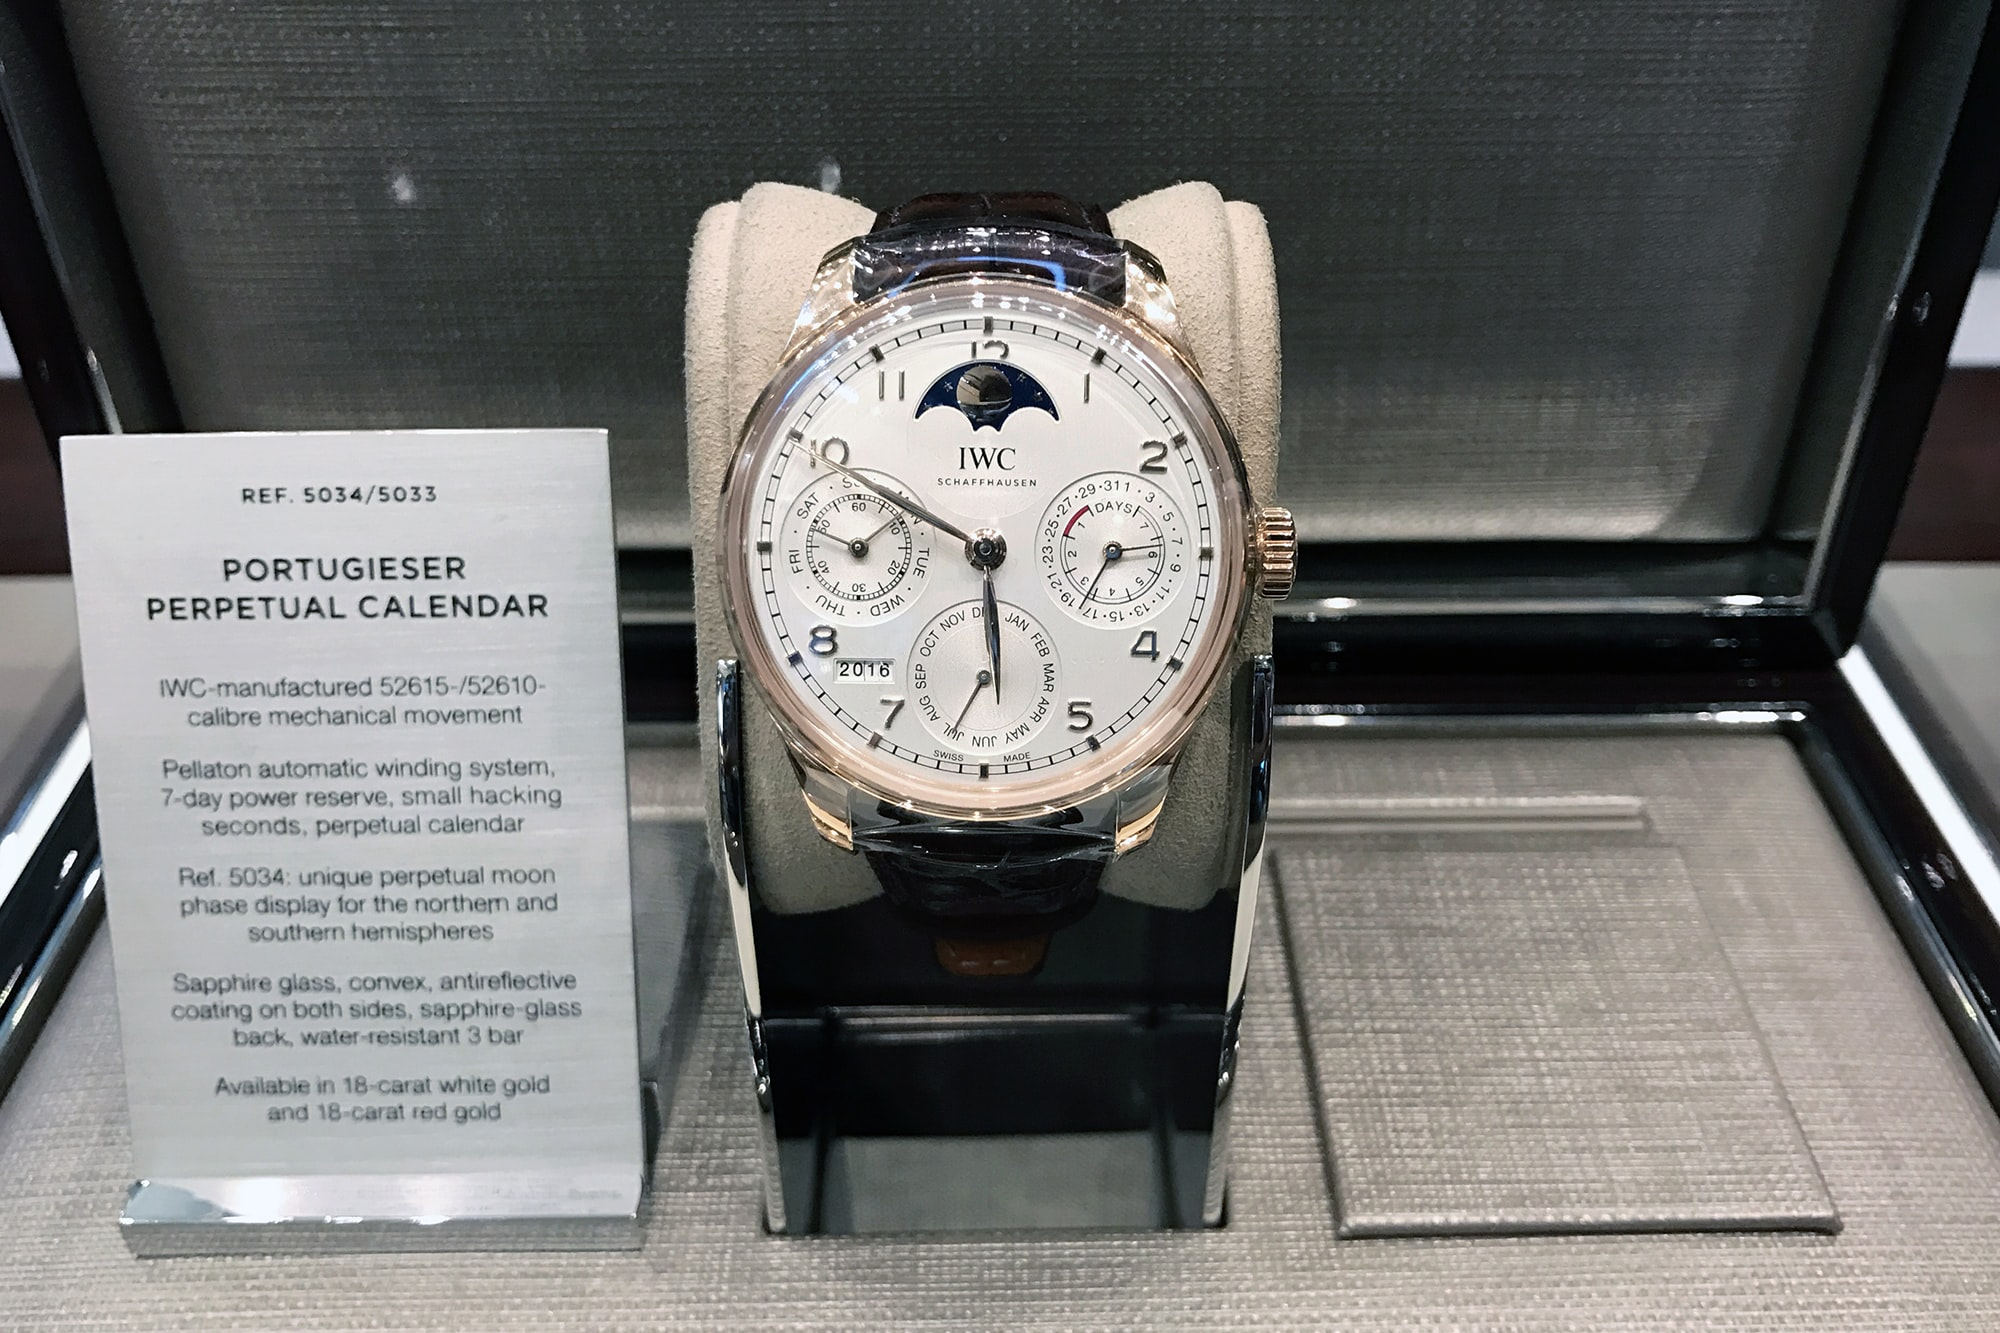 Photo Report: HODINKEE And IWC Celebrate The Portugieser Hand-Wound Tourbillion Edition 'D.H. Craig USA' In New York Photo Report: HODINKEE And IWC Celebrate The Portugieser Hand-Wound Tourbillion Edition 'D.H. Craig USA' In New York 0139 copy